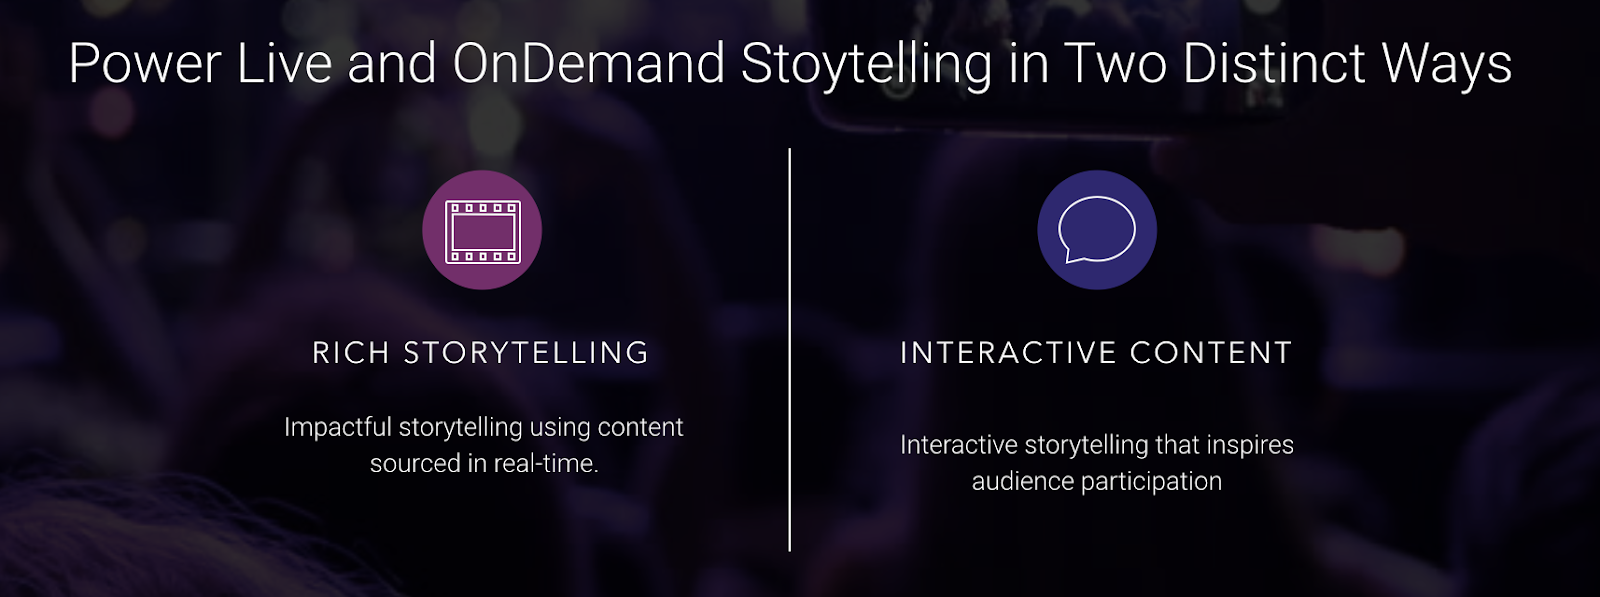 Storytelling: Using Social Content in Live and OnDemand Video